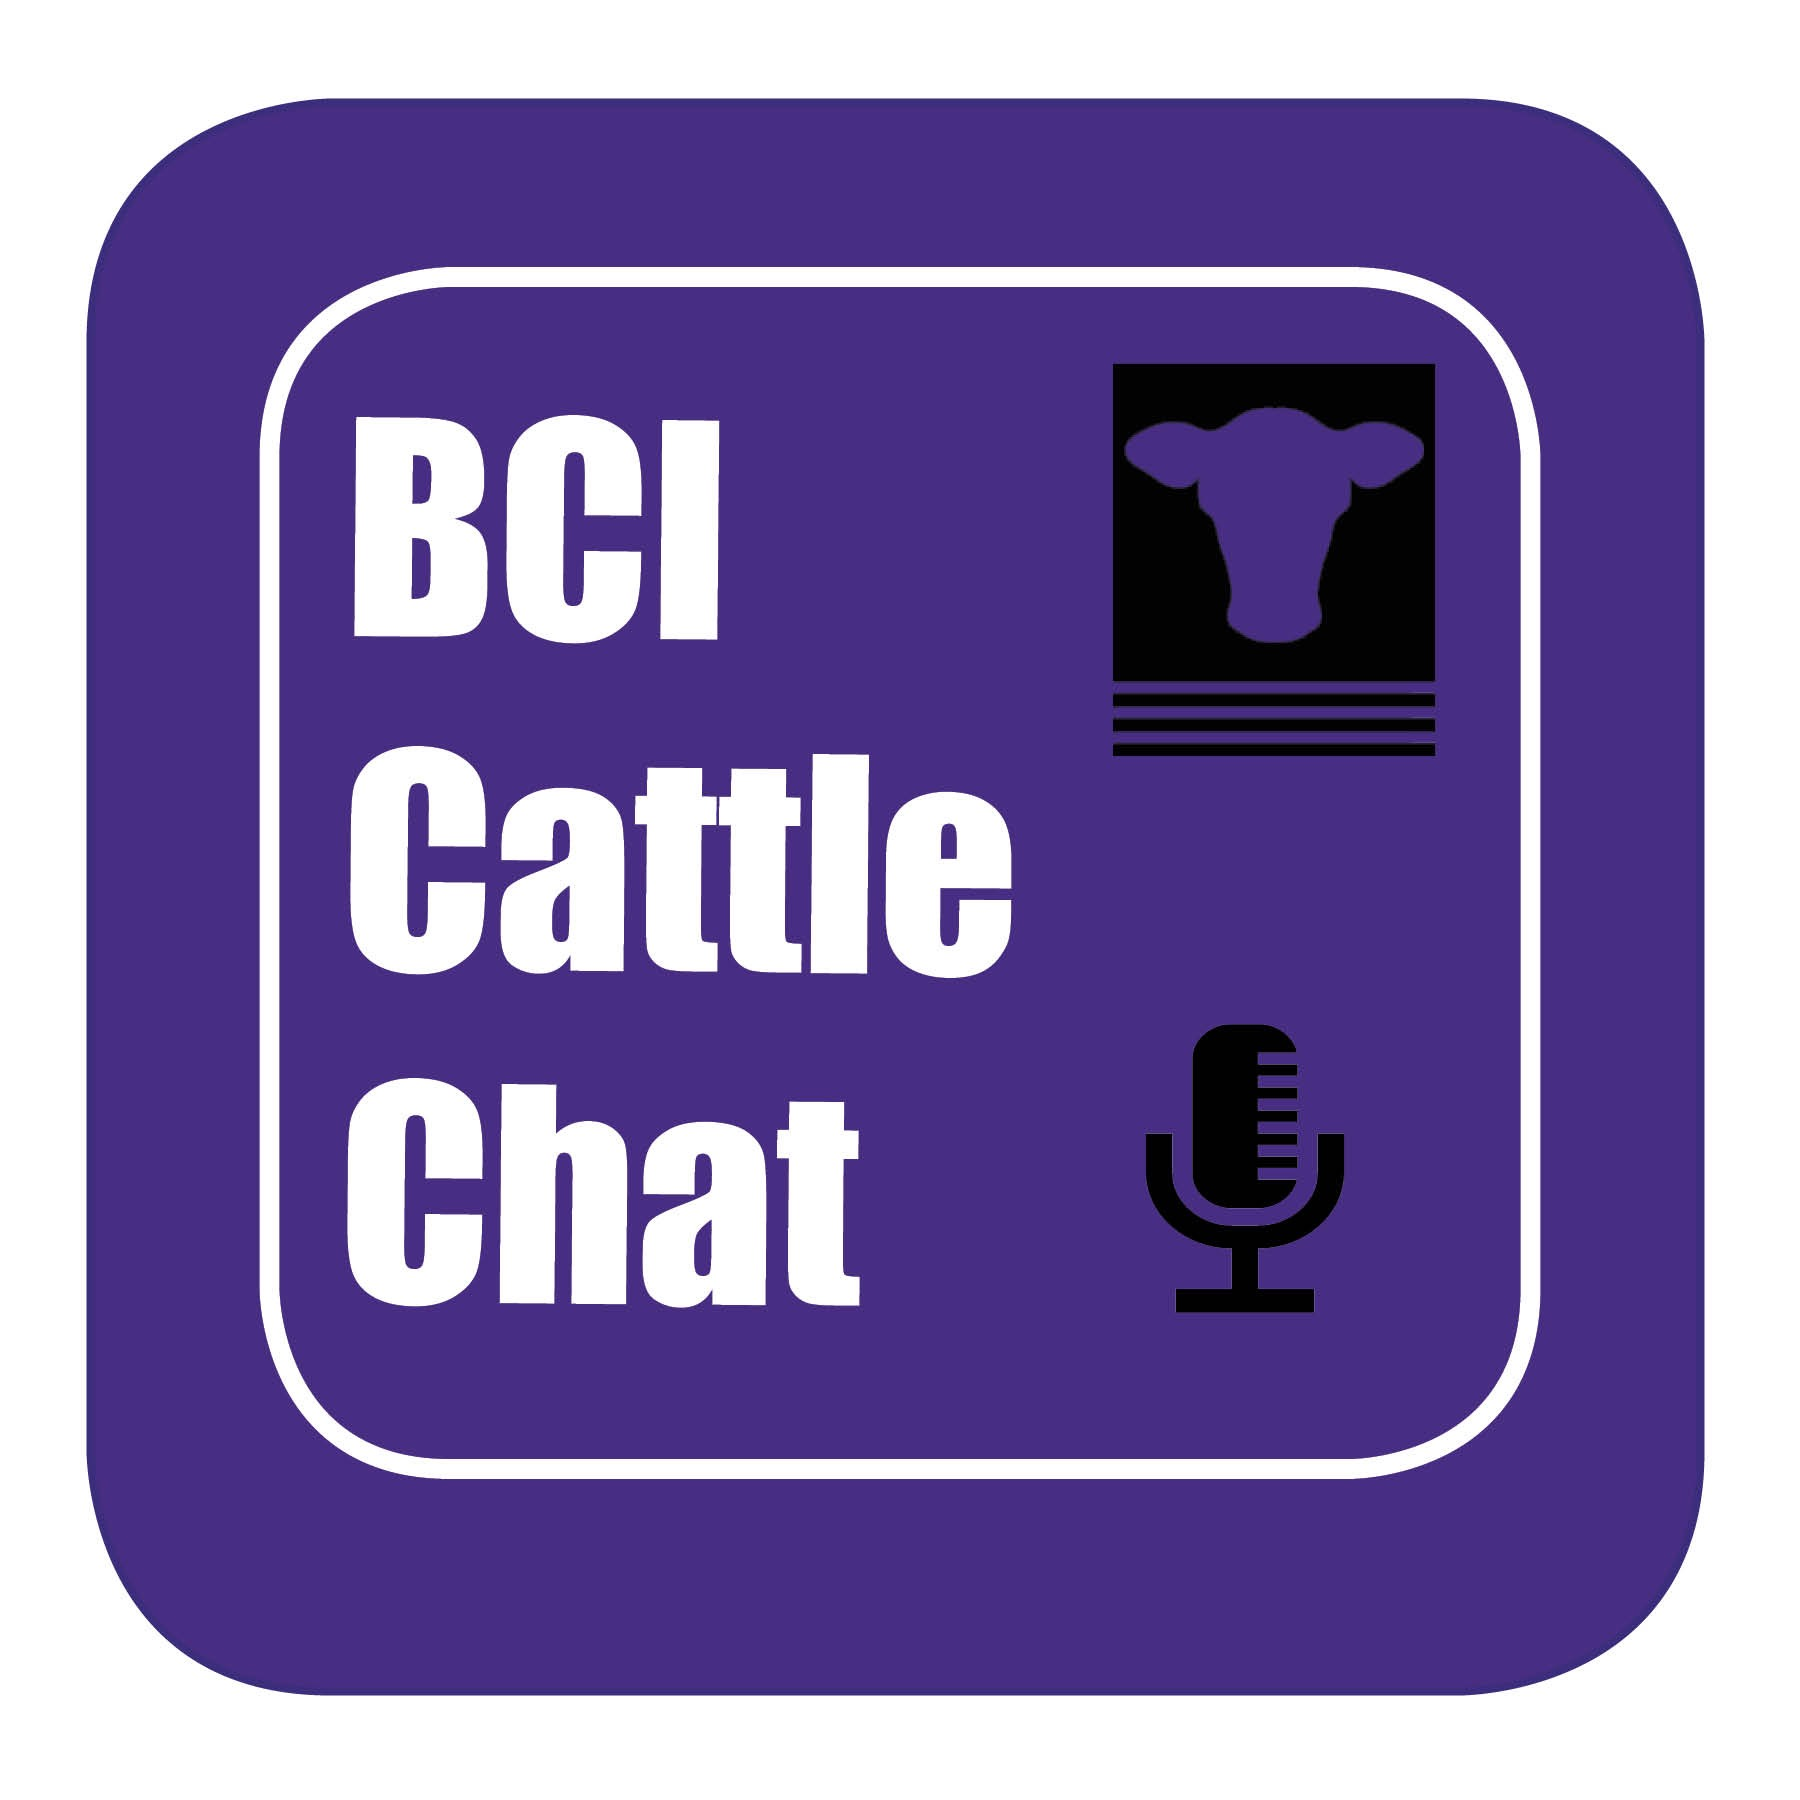 BCI Cattle Chat - Episode 20